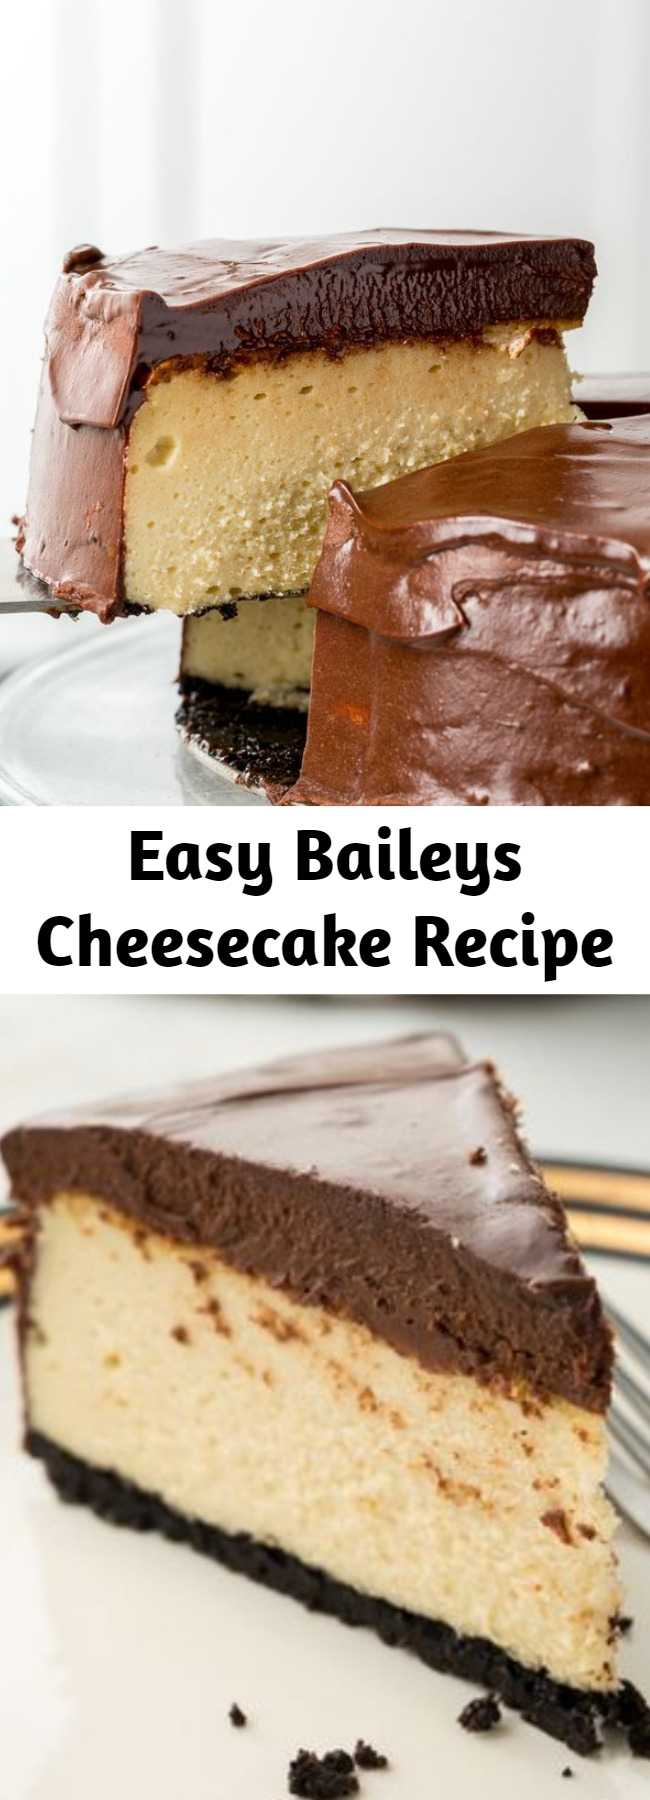 Easy Baileys Cheesecake Recipe -  Looking for the perfect Baileys cheesecake recipe? This Baileys Cheesecake is the best.